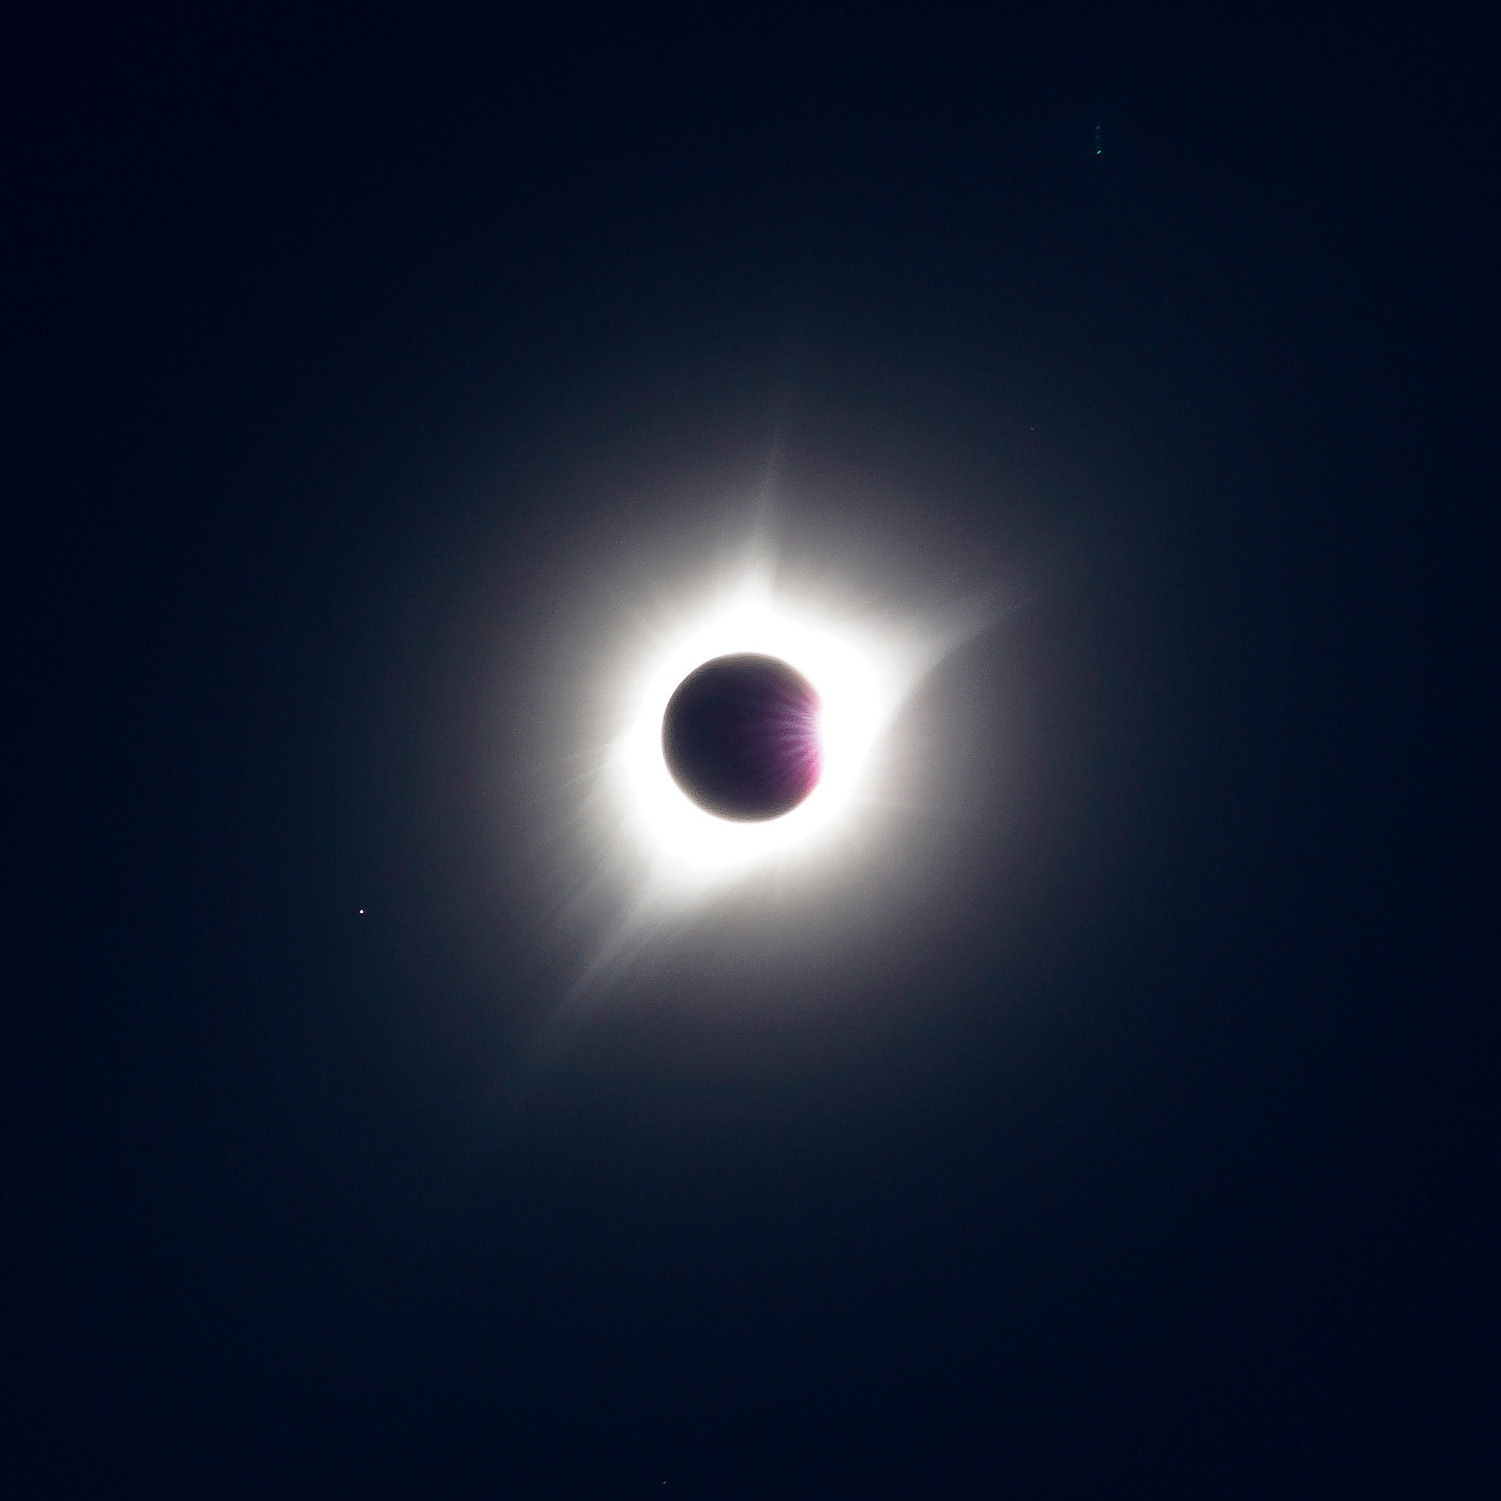 End of the Eclipse